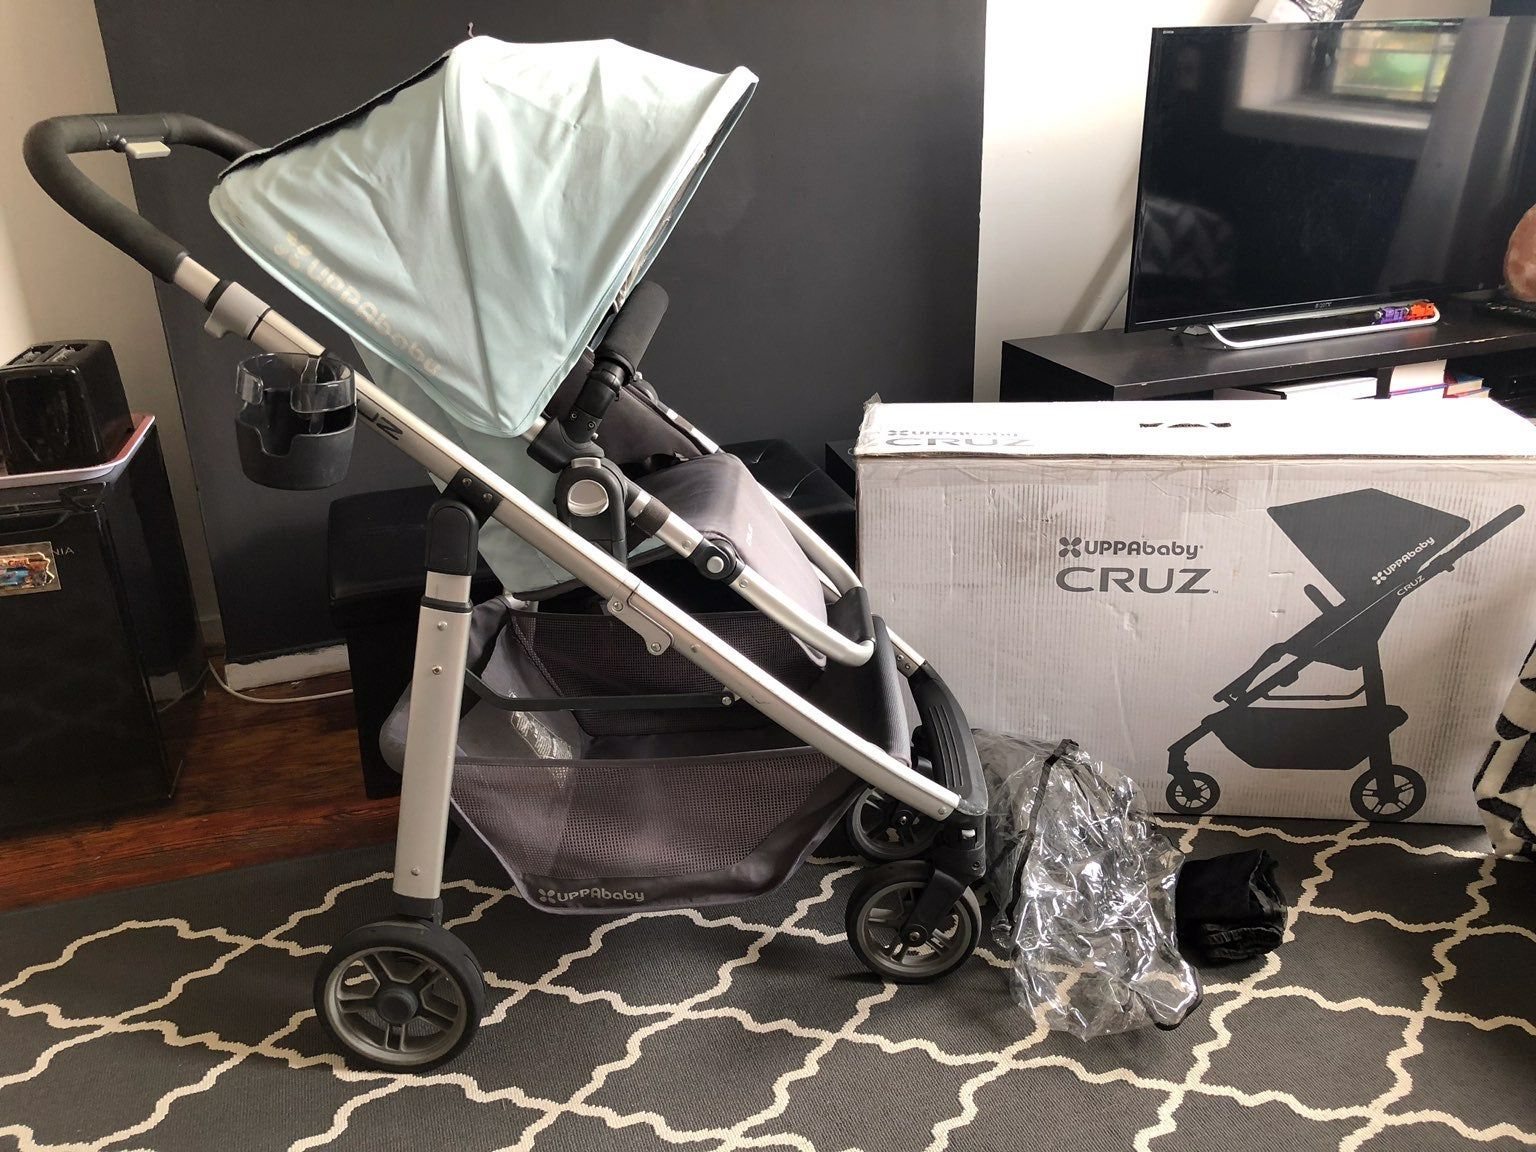 Used uppababy cruz manufactured 10/29/2011 Please look